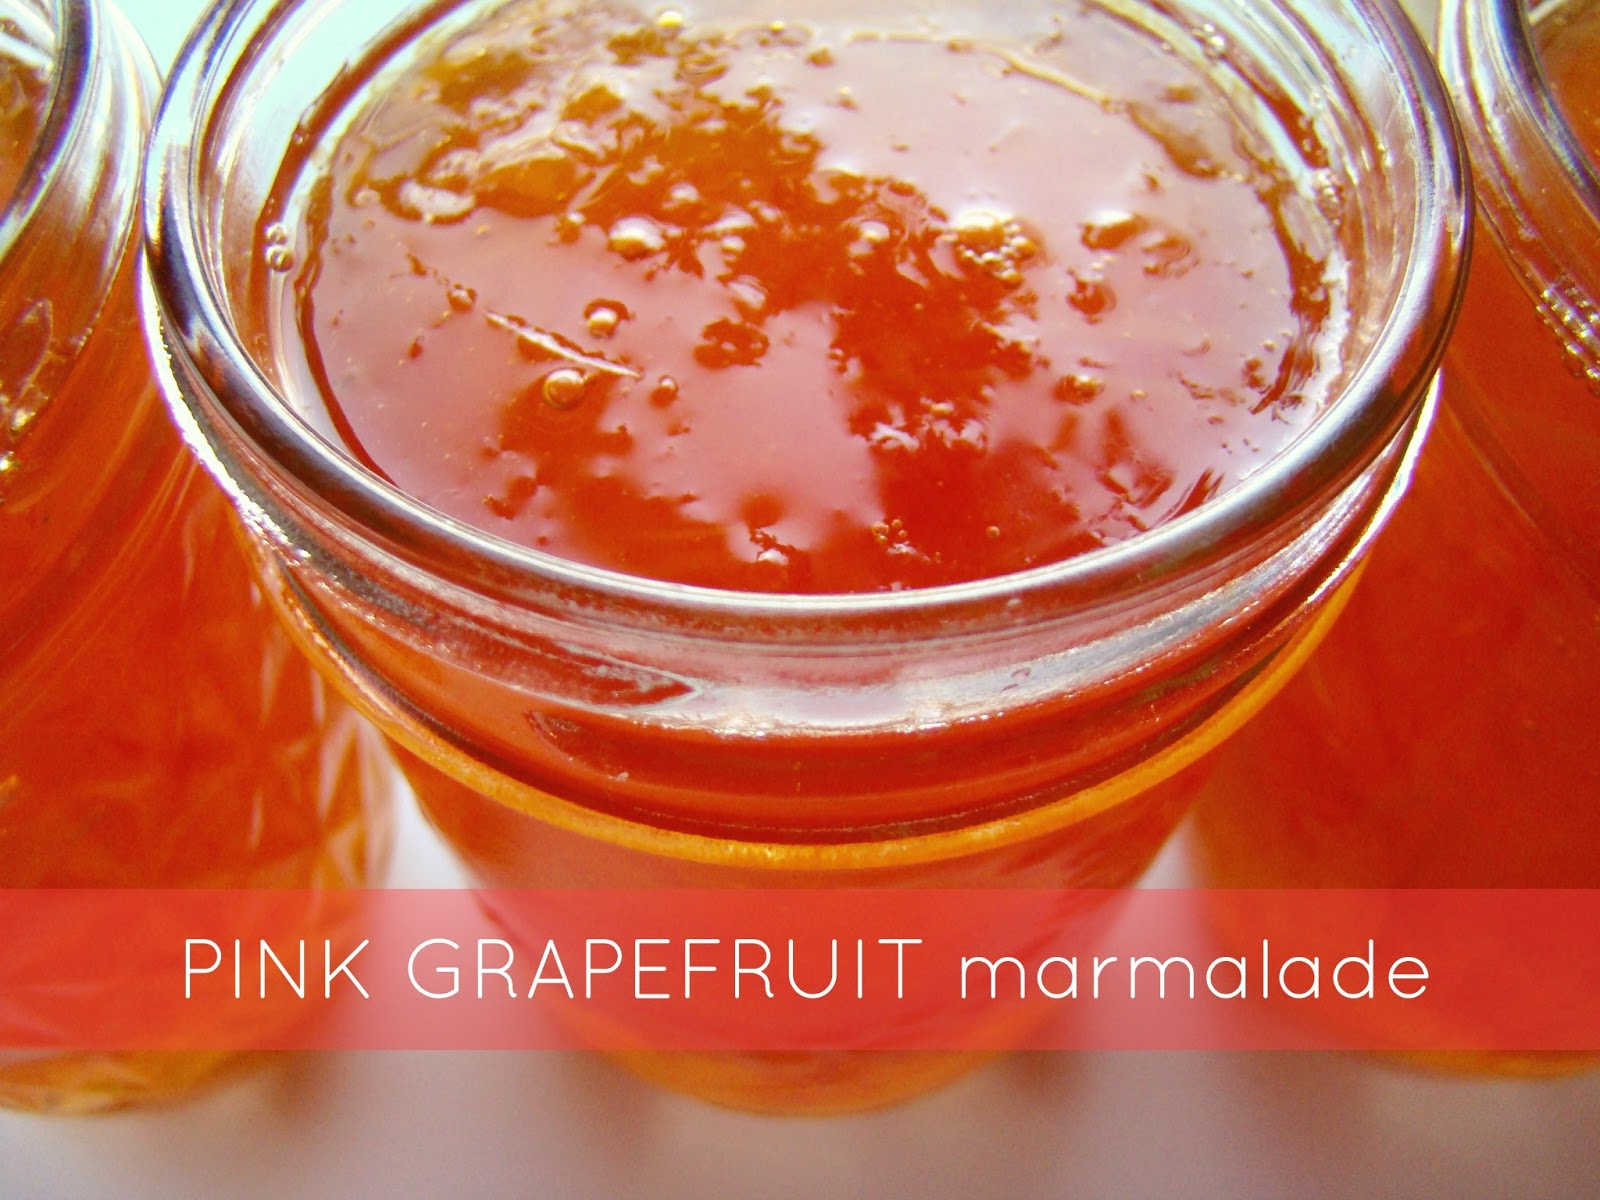 Family Feedbag: Pink grapefruit marmalade